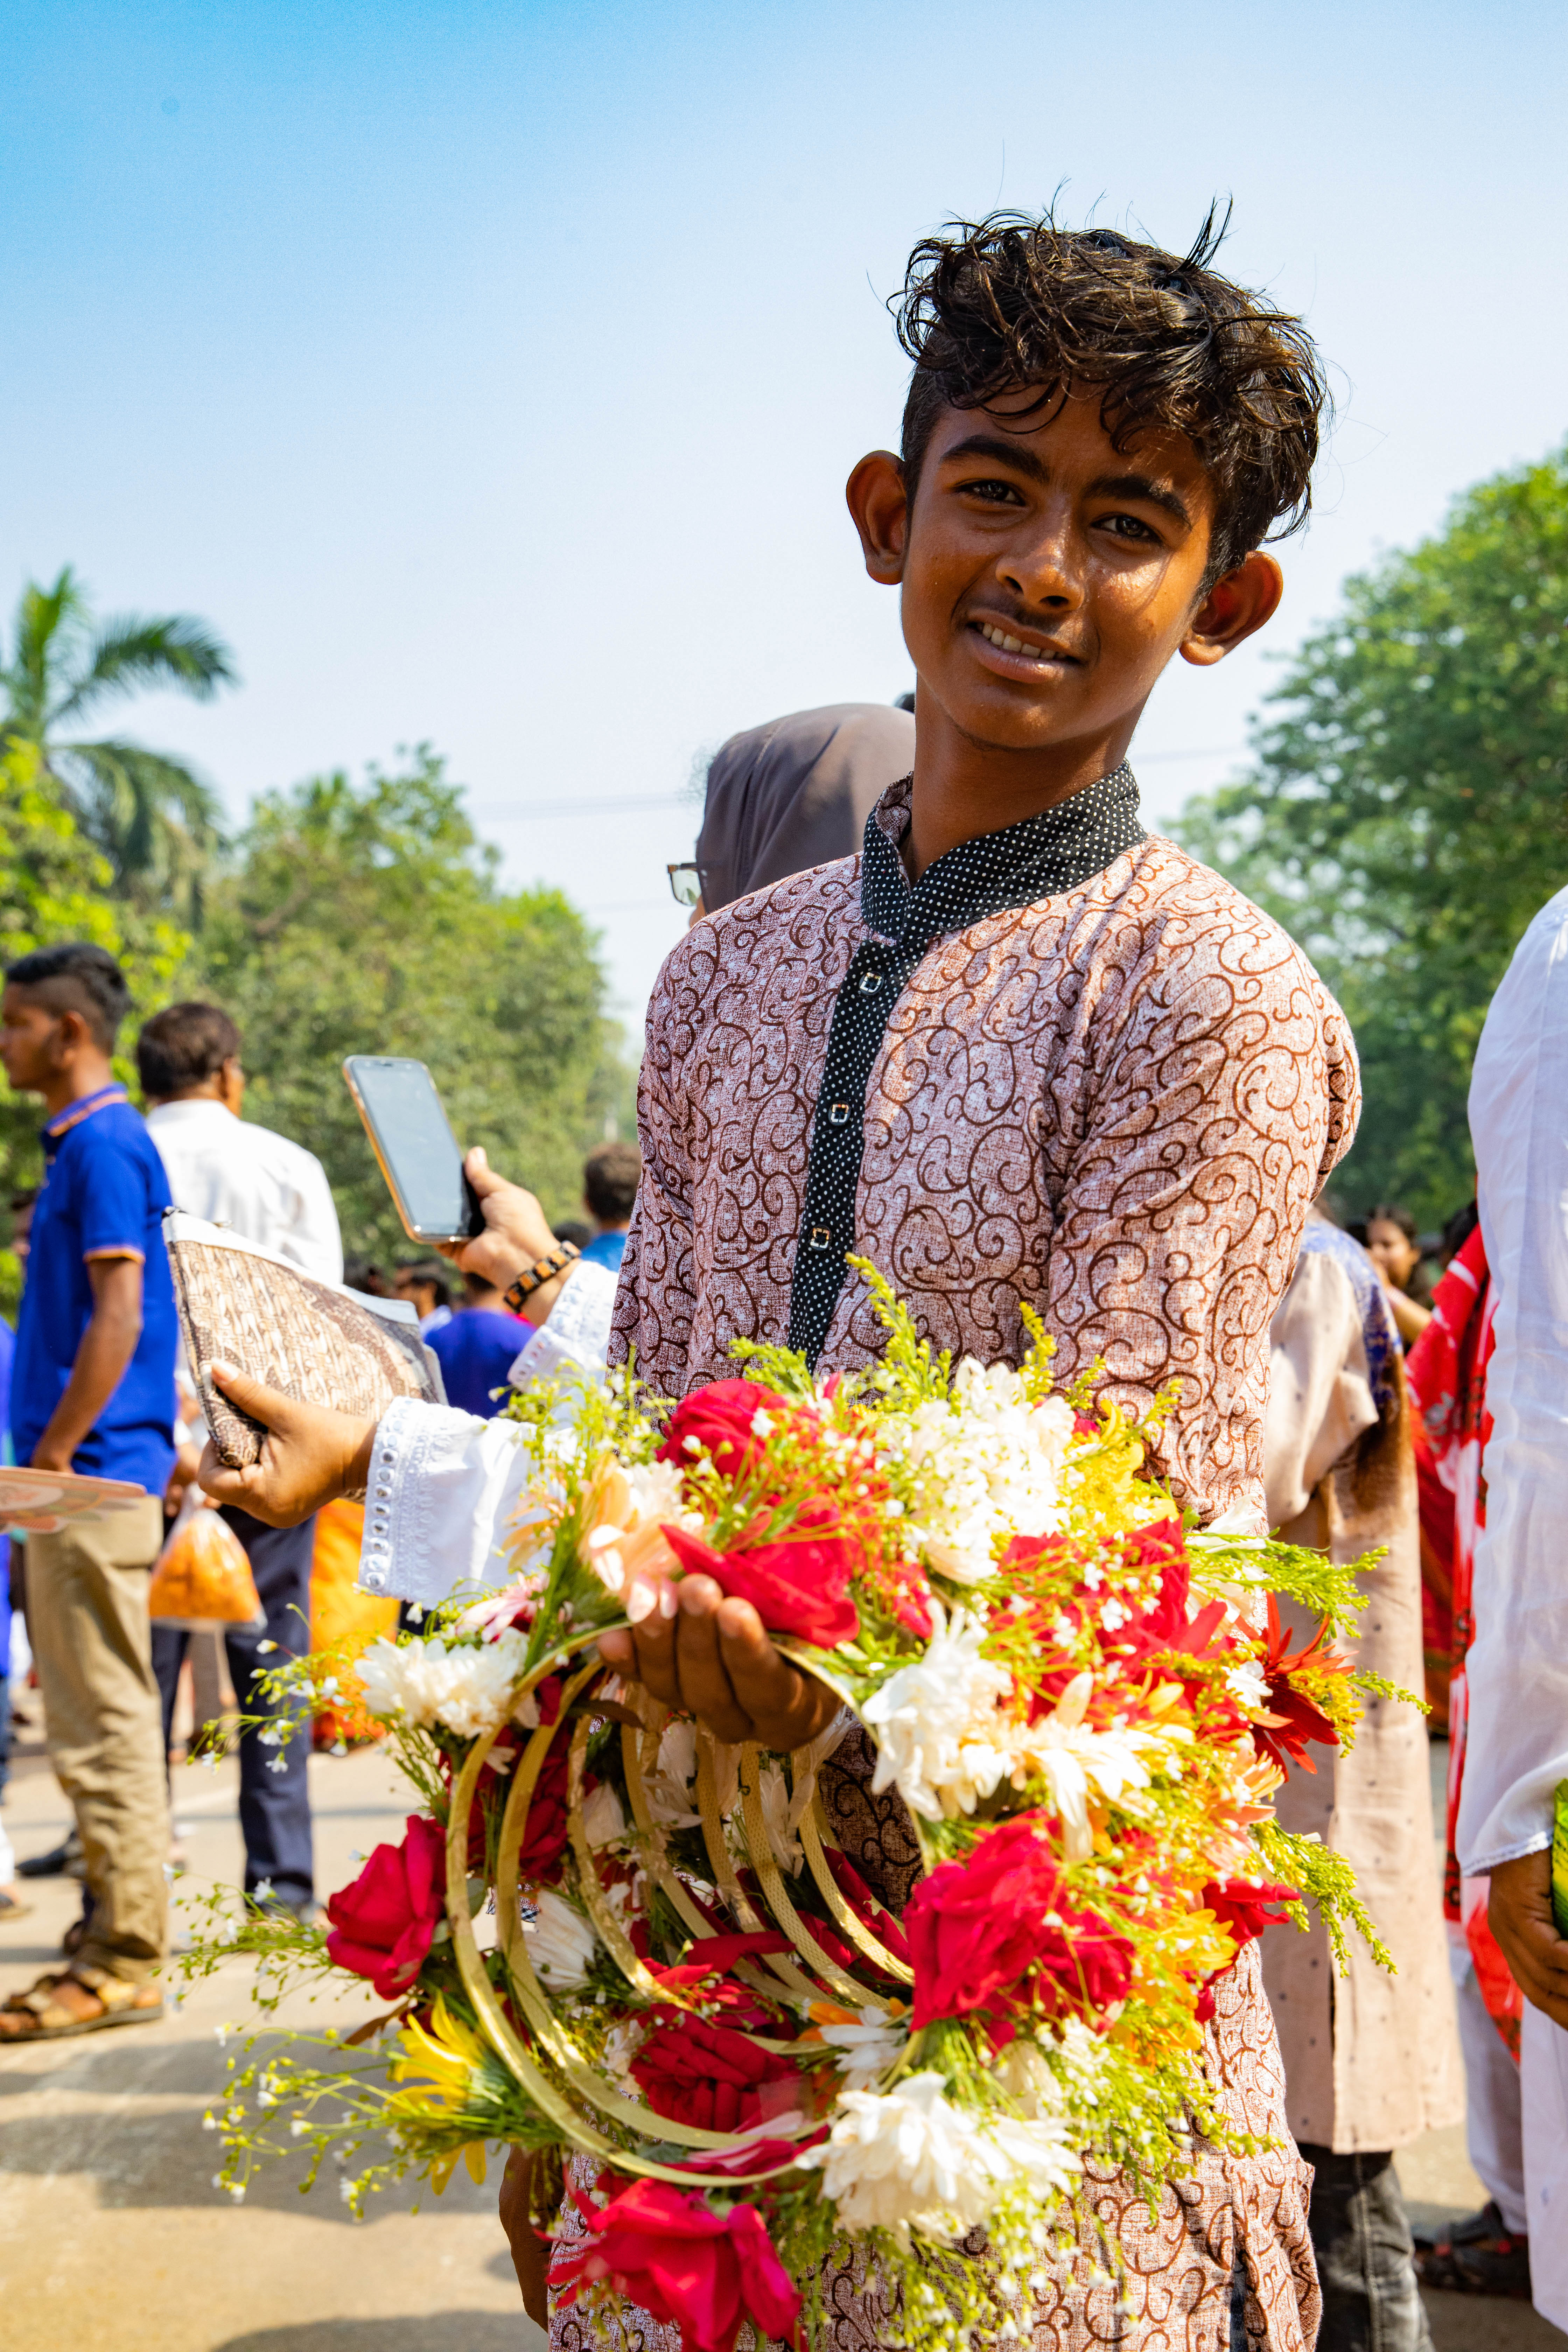 The Sea of Smiling Faces - Photo collection of Bengali New Year